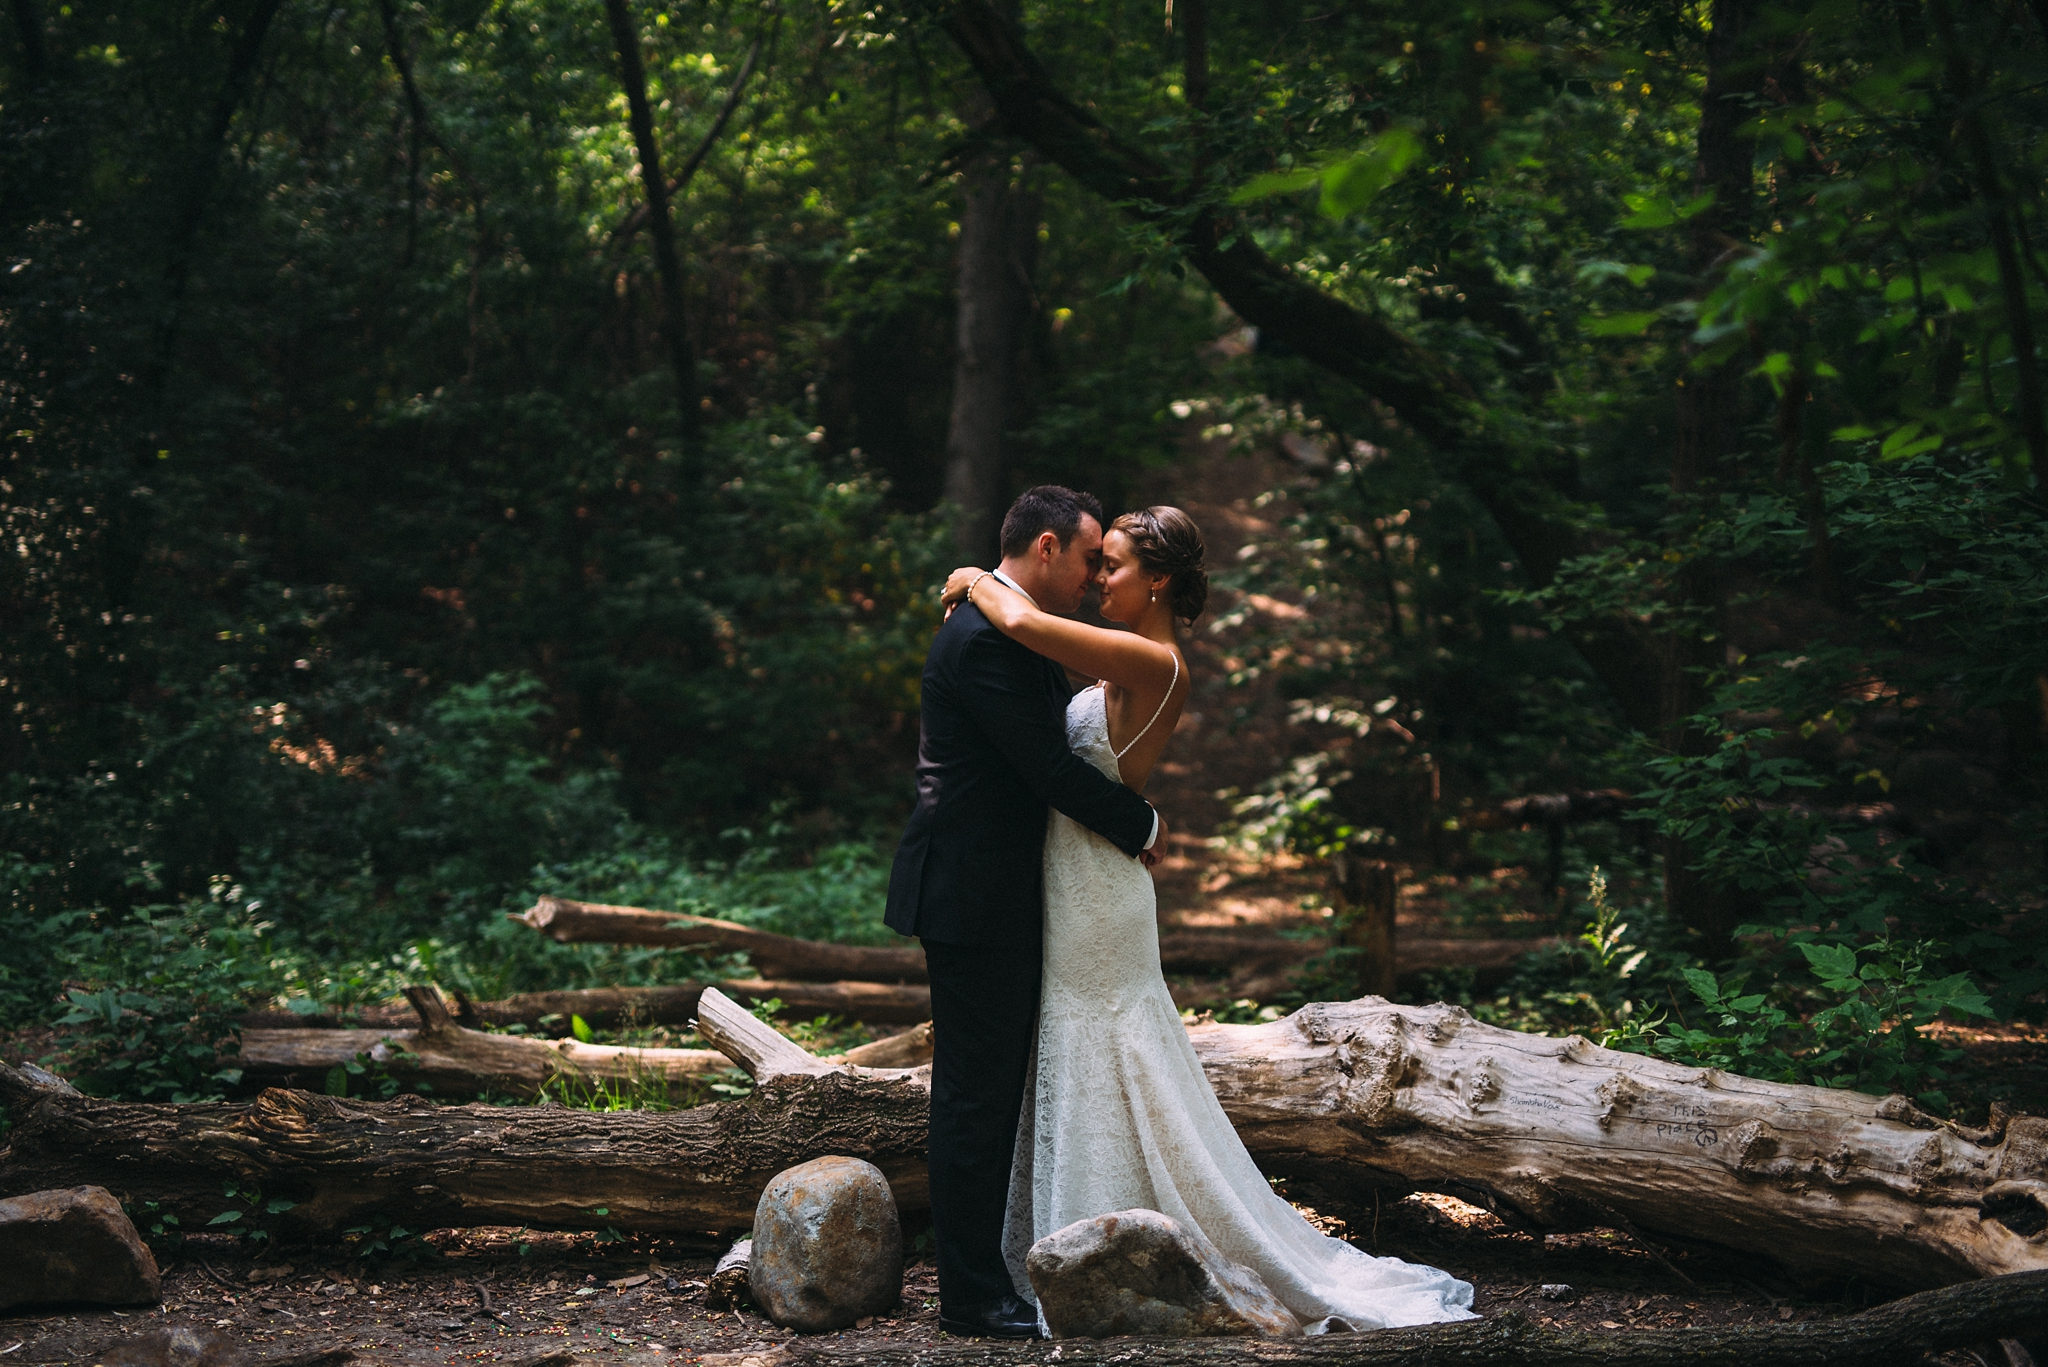 kaihla_tonai_intimate_wedding_elopement_photographer_1979